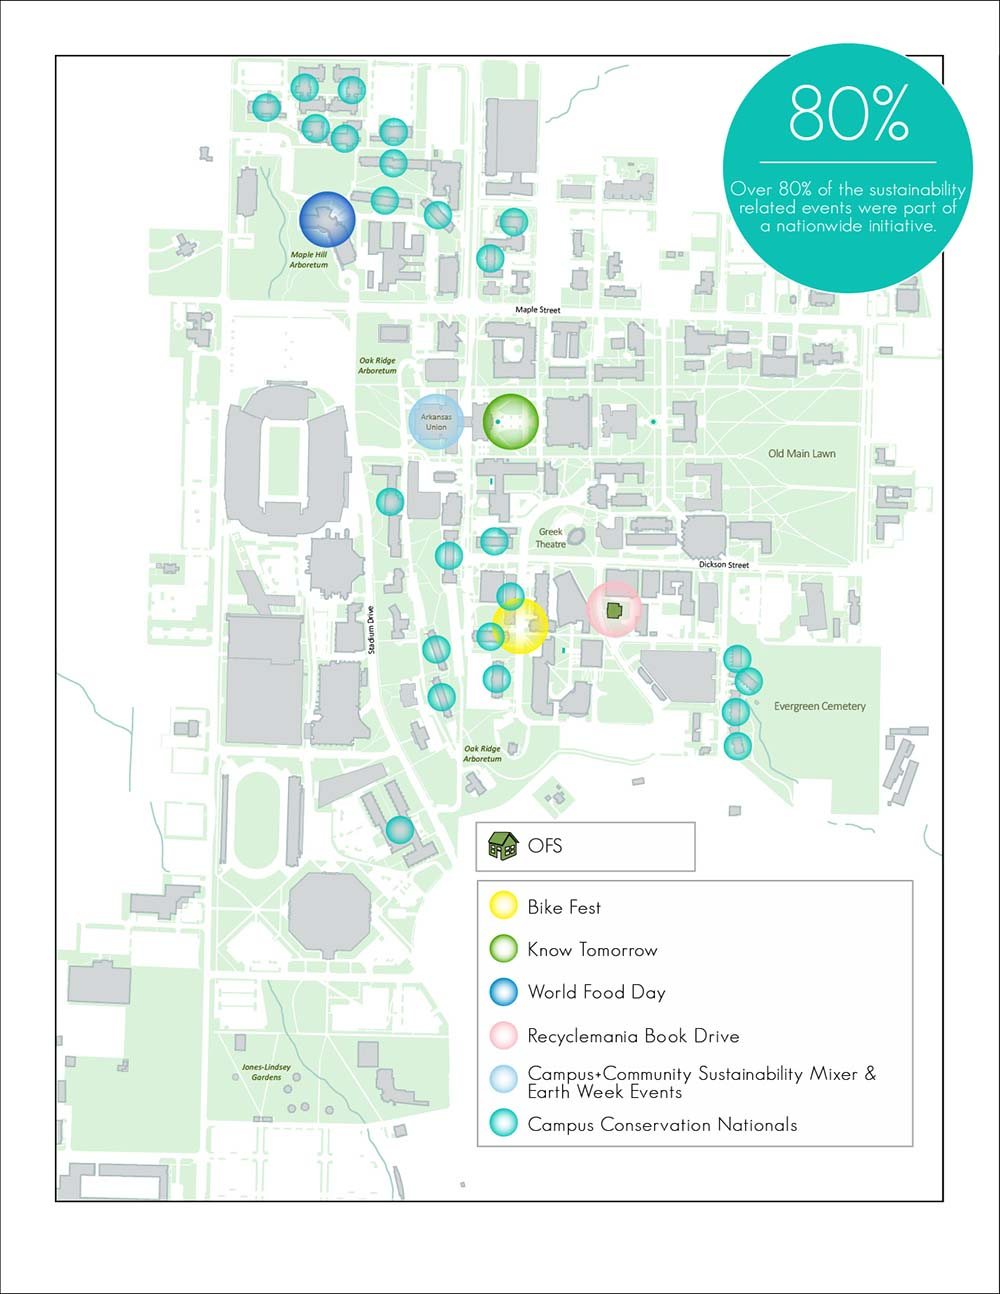 Map of LEED buildings on campus